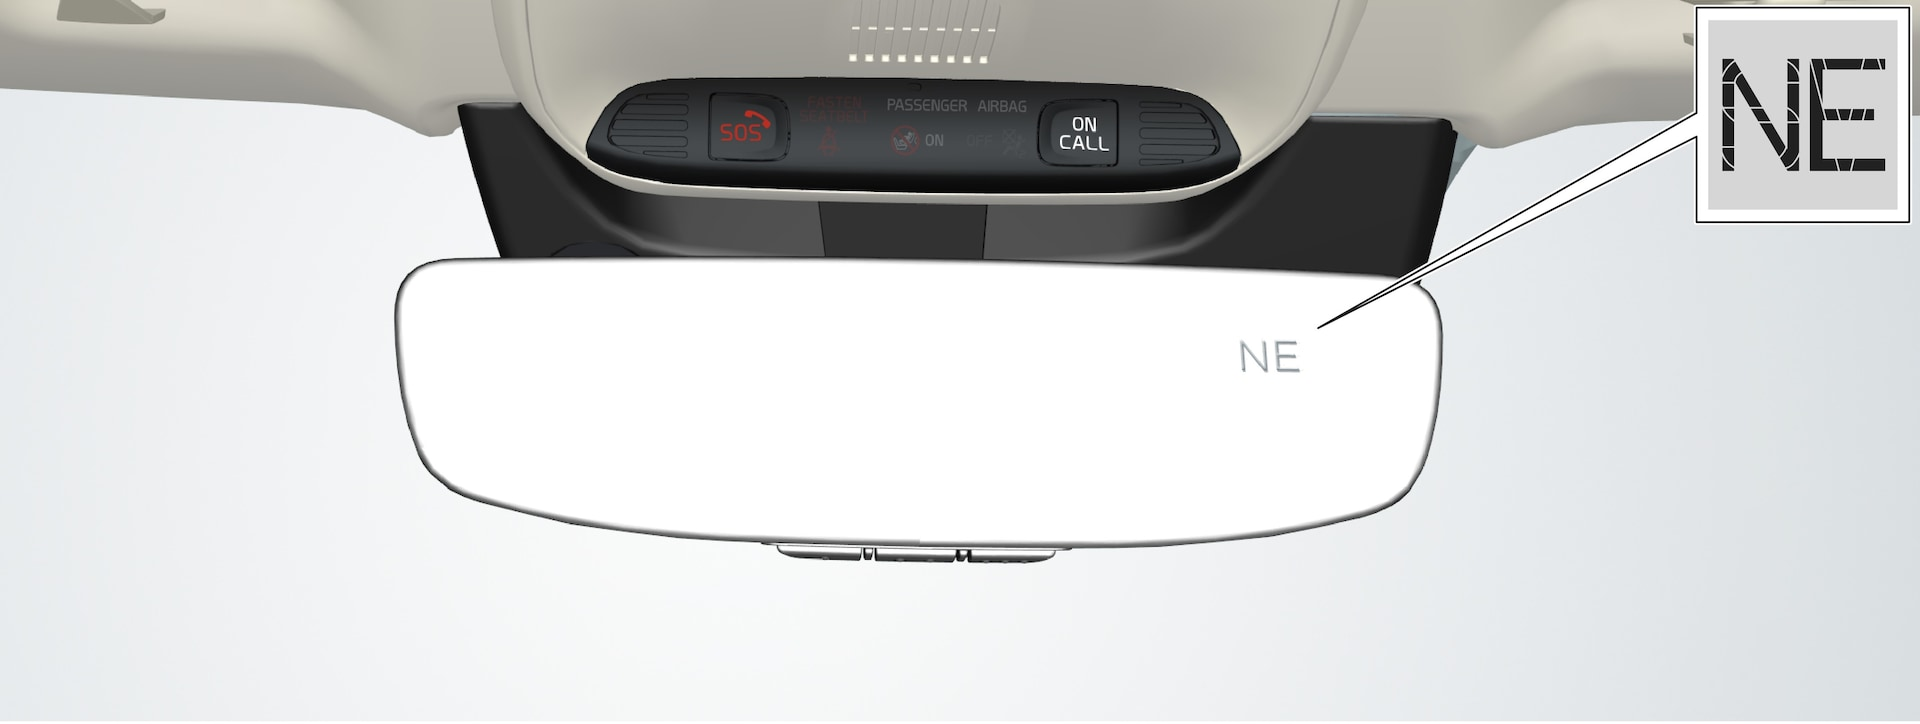 P5-1507-Rearview mirror with compass display